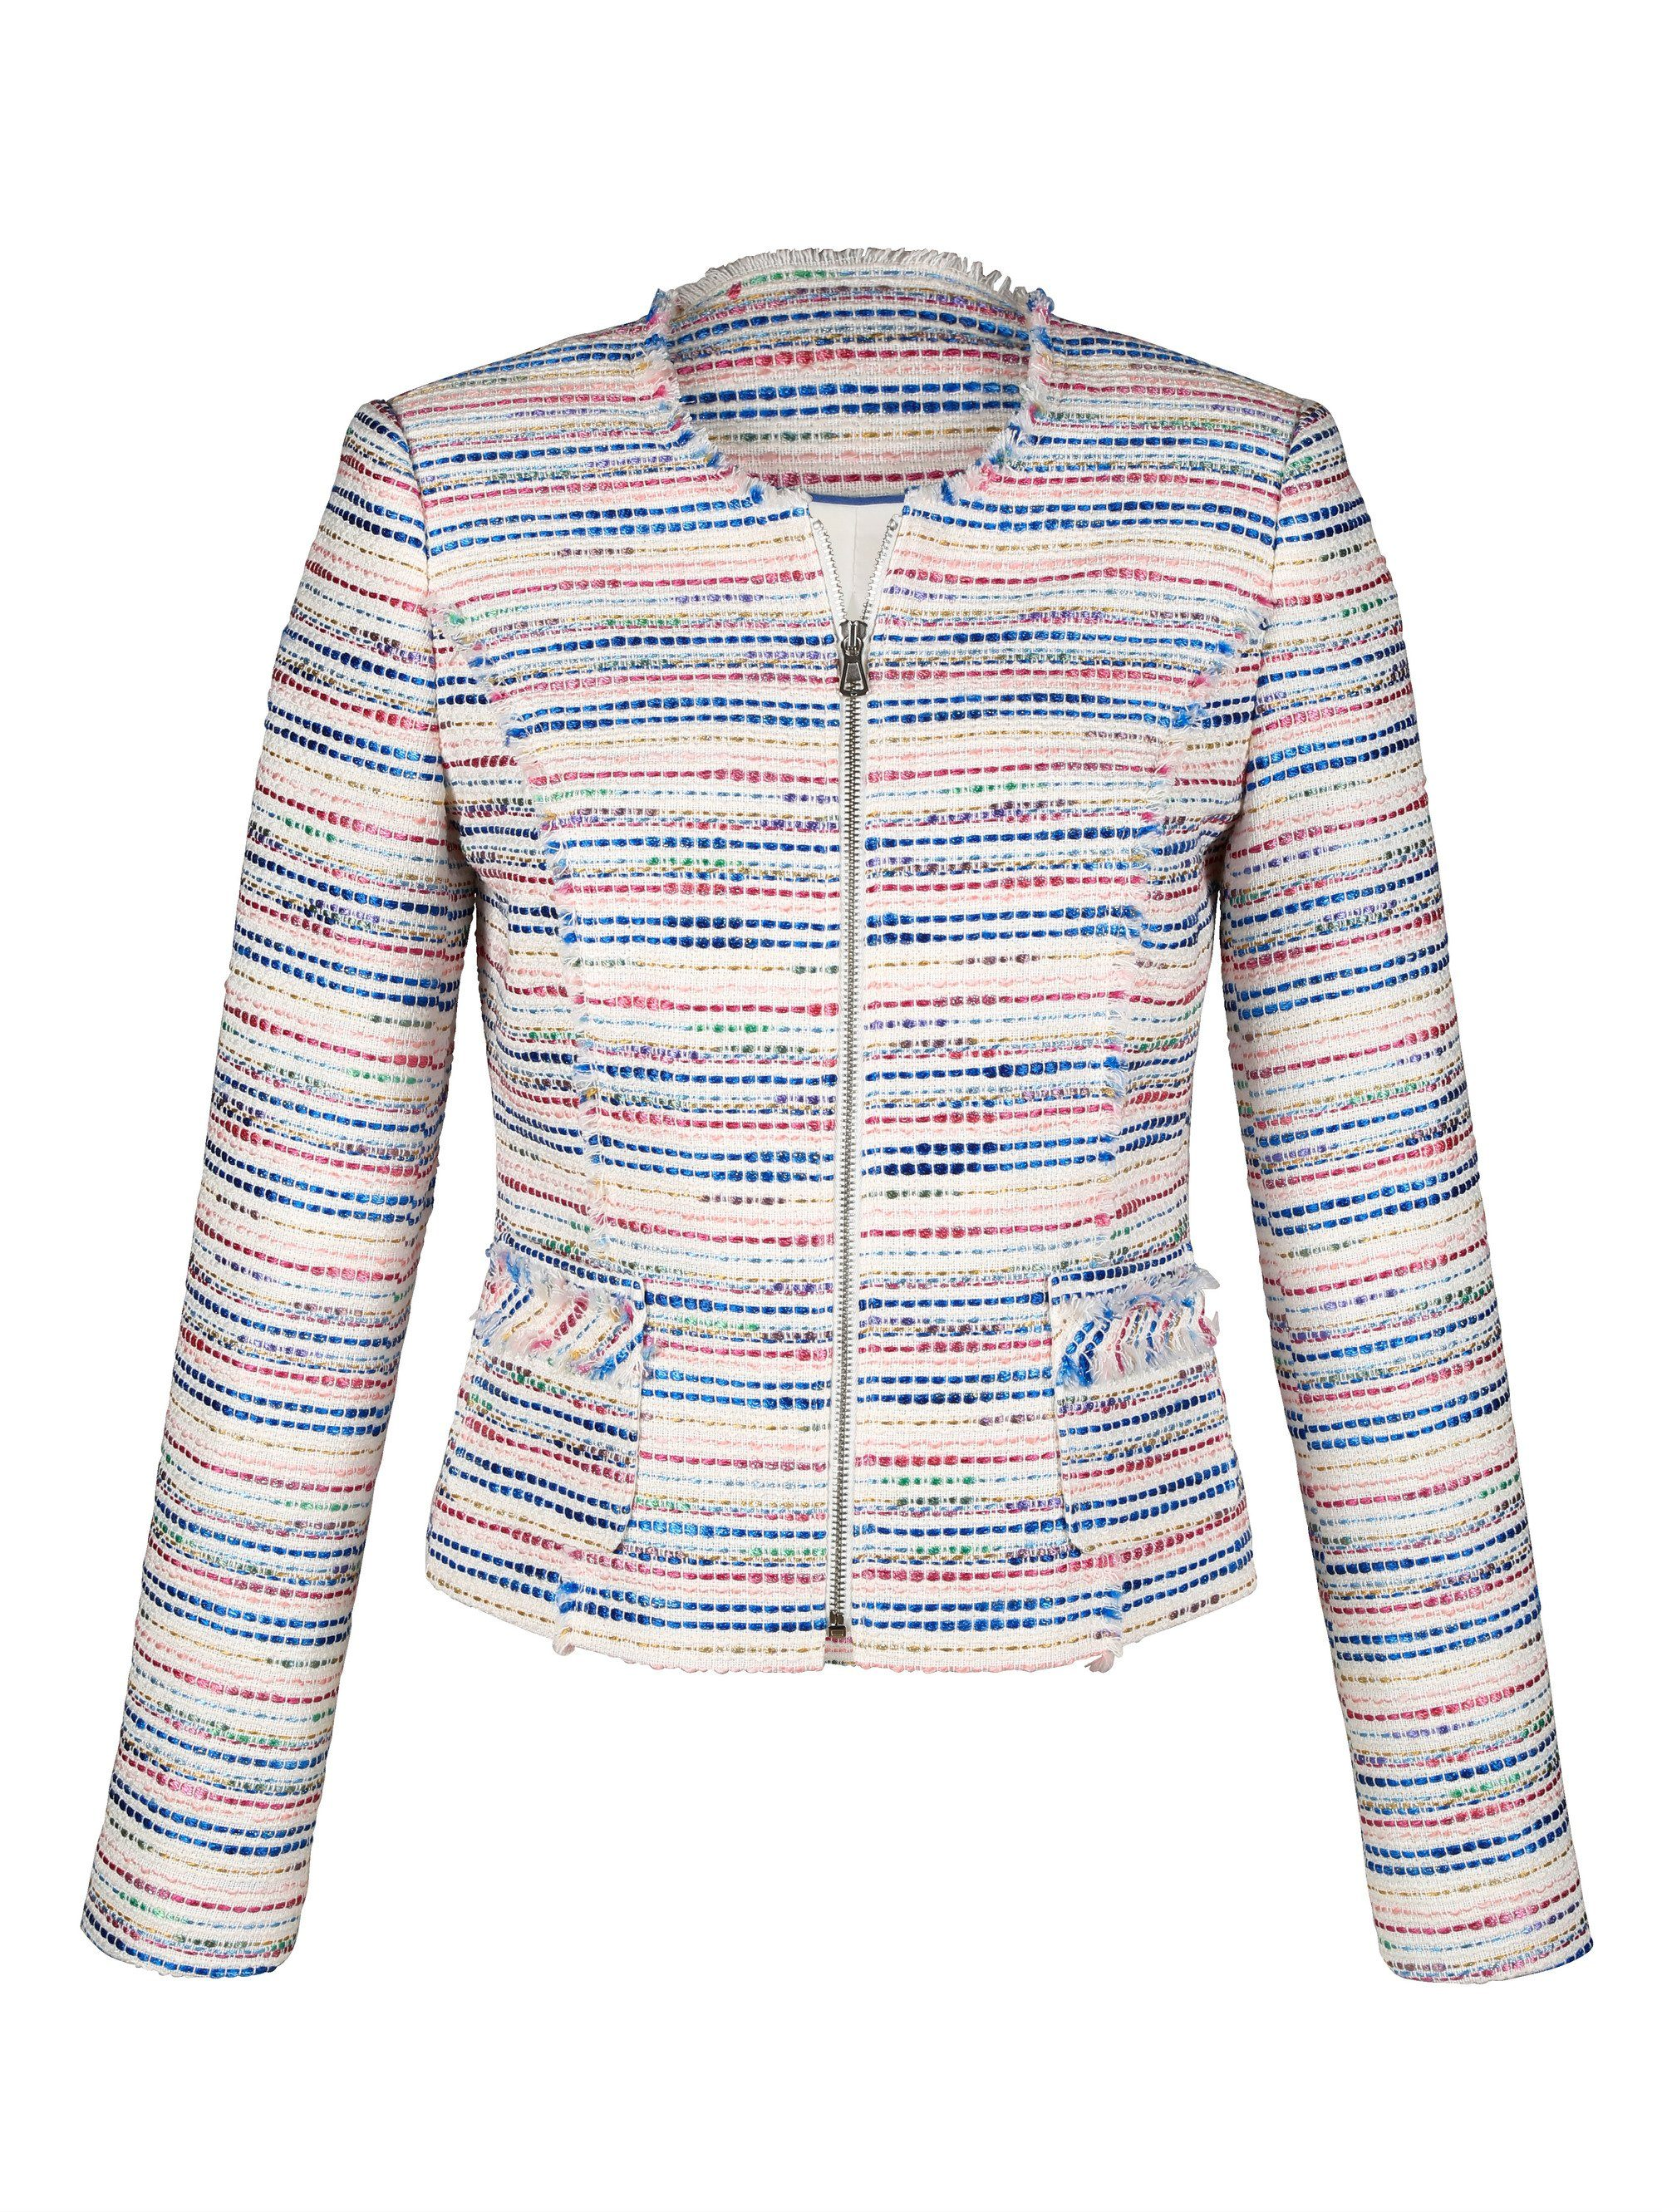 https   www.universal.at p tom-tailor-shirtbluse-mit-feinem-muster ... 91f54a6877